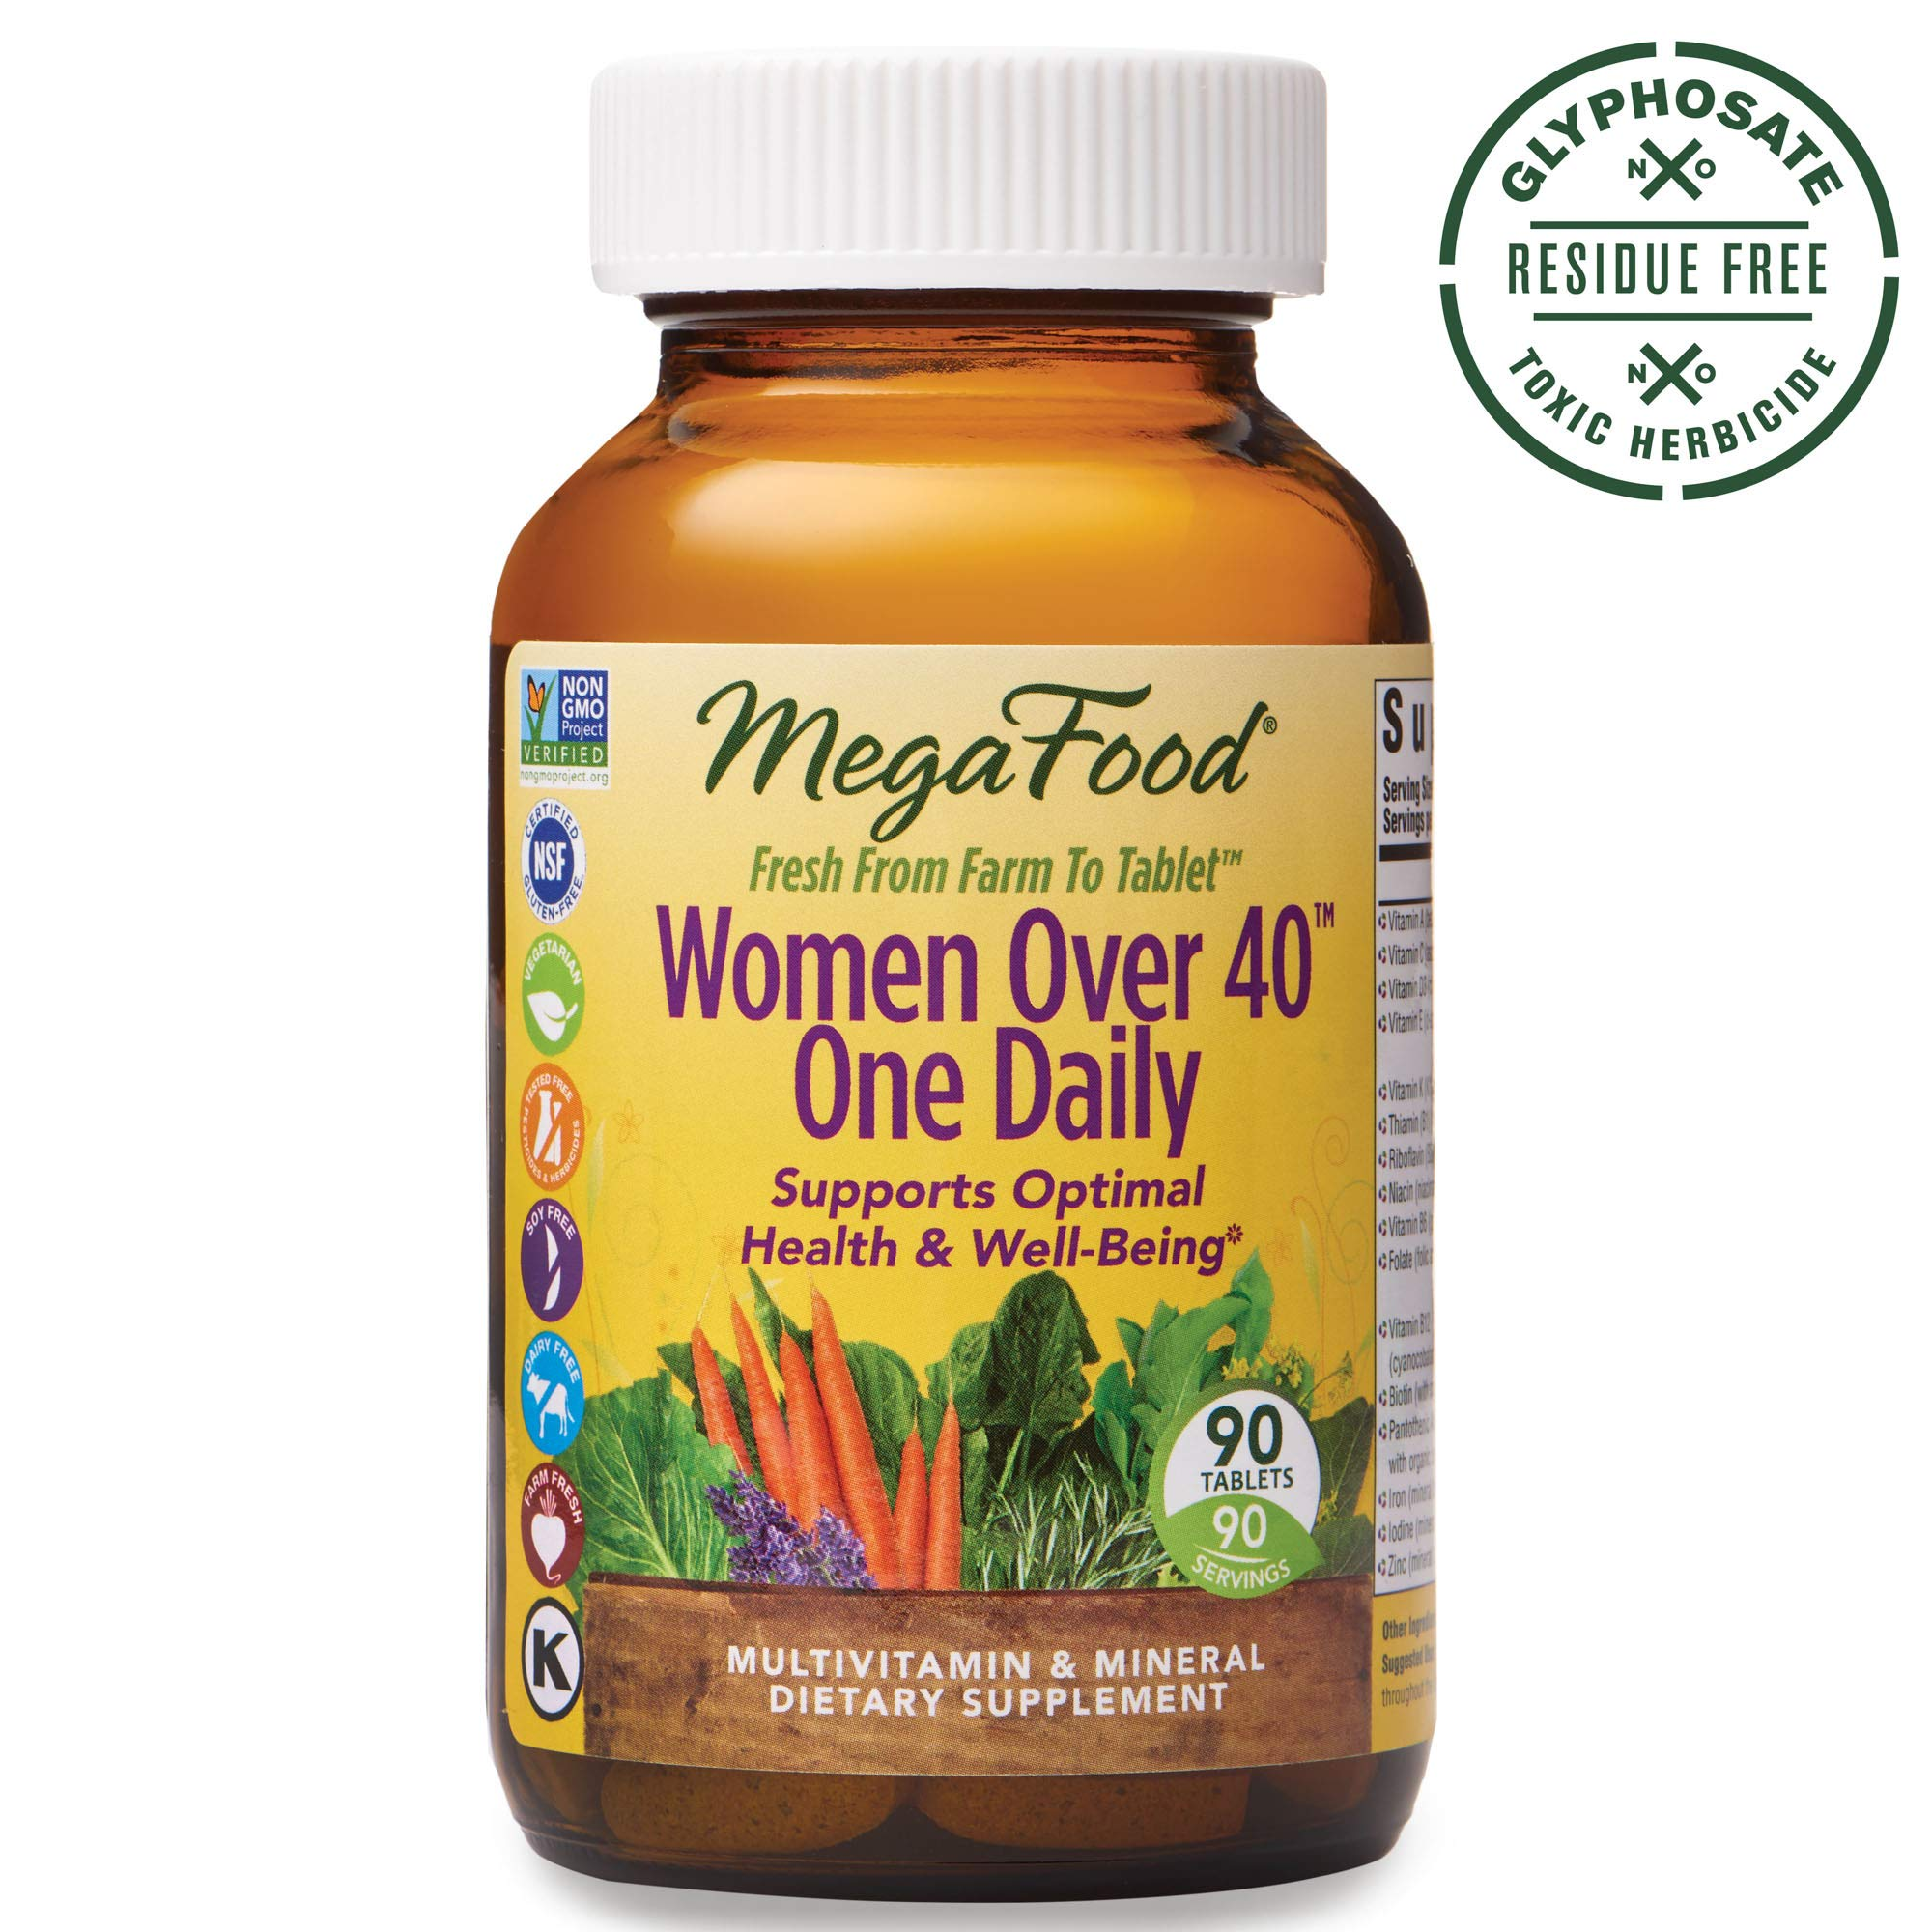 MegaFood, Women Over 40 One Daily, Daily Multivitamin and Mineral Dietary Supplement with Vitamins C, D, Folate, Biotin and Iron, Non-GMO, Vegetarian, 90 Tablets (90 Servings) (FFP) by MegaFood